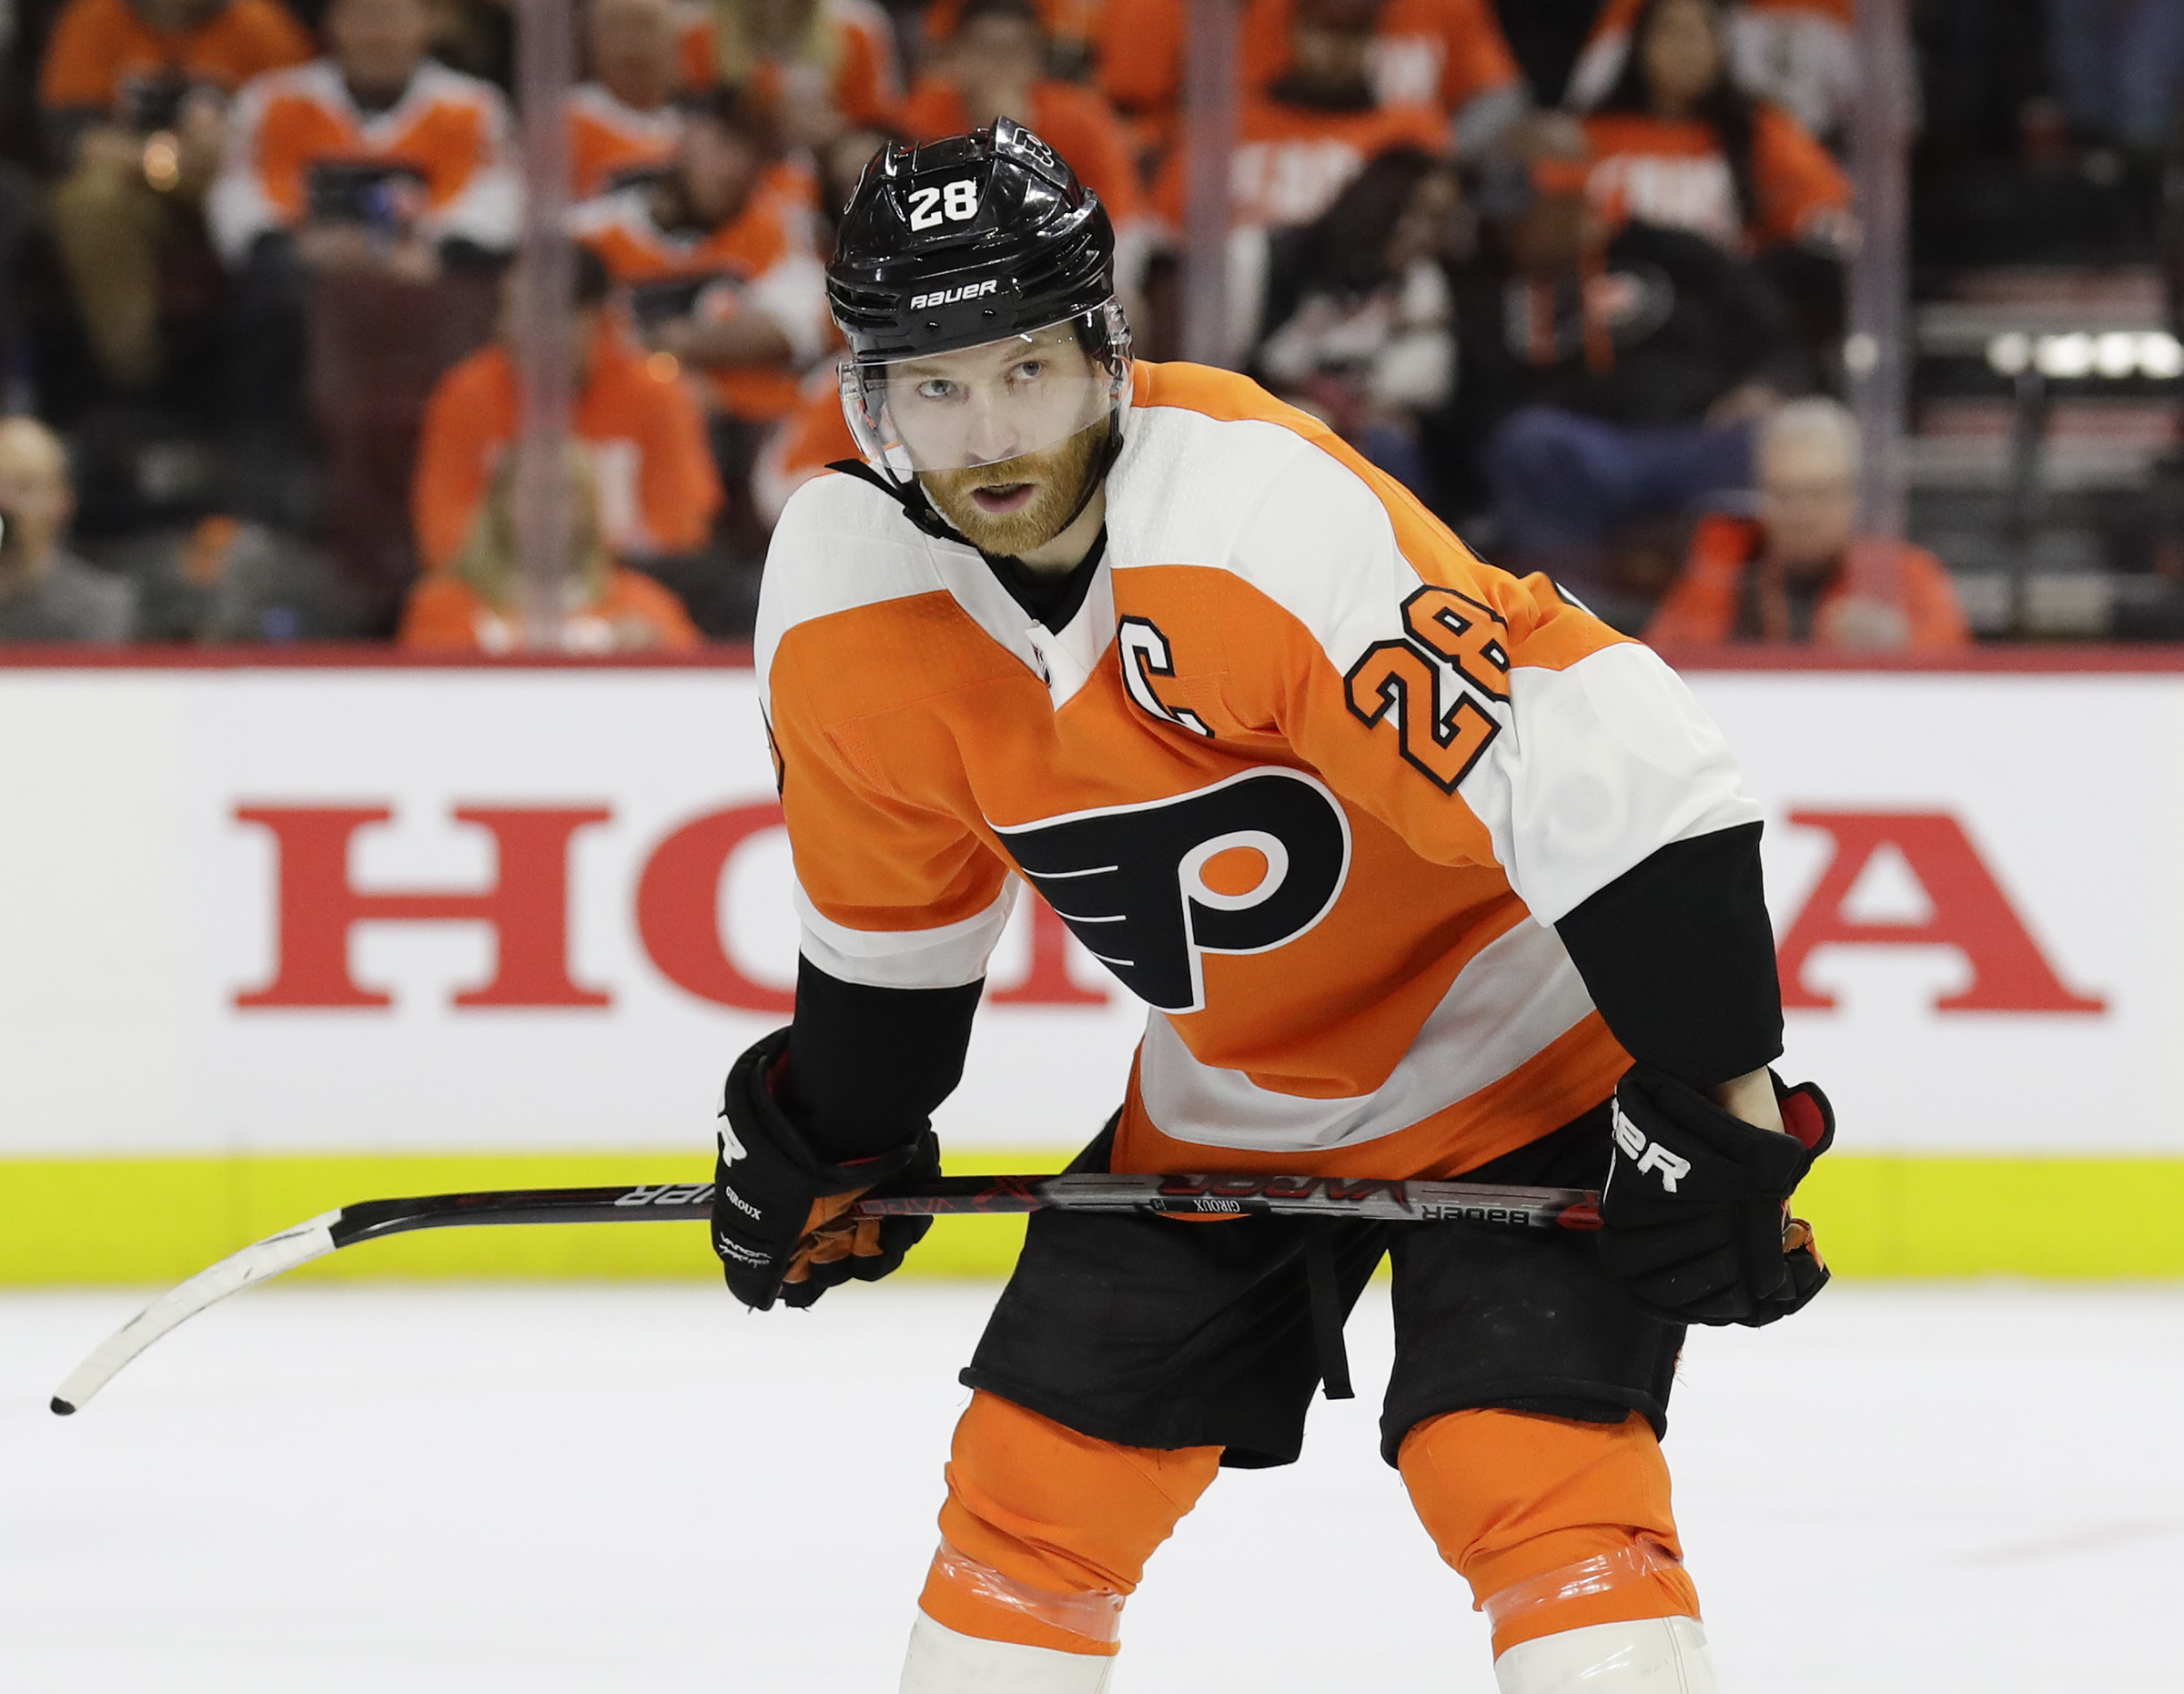 Claude Giroux set career highs in goals (34) and points (102) last season.